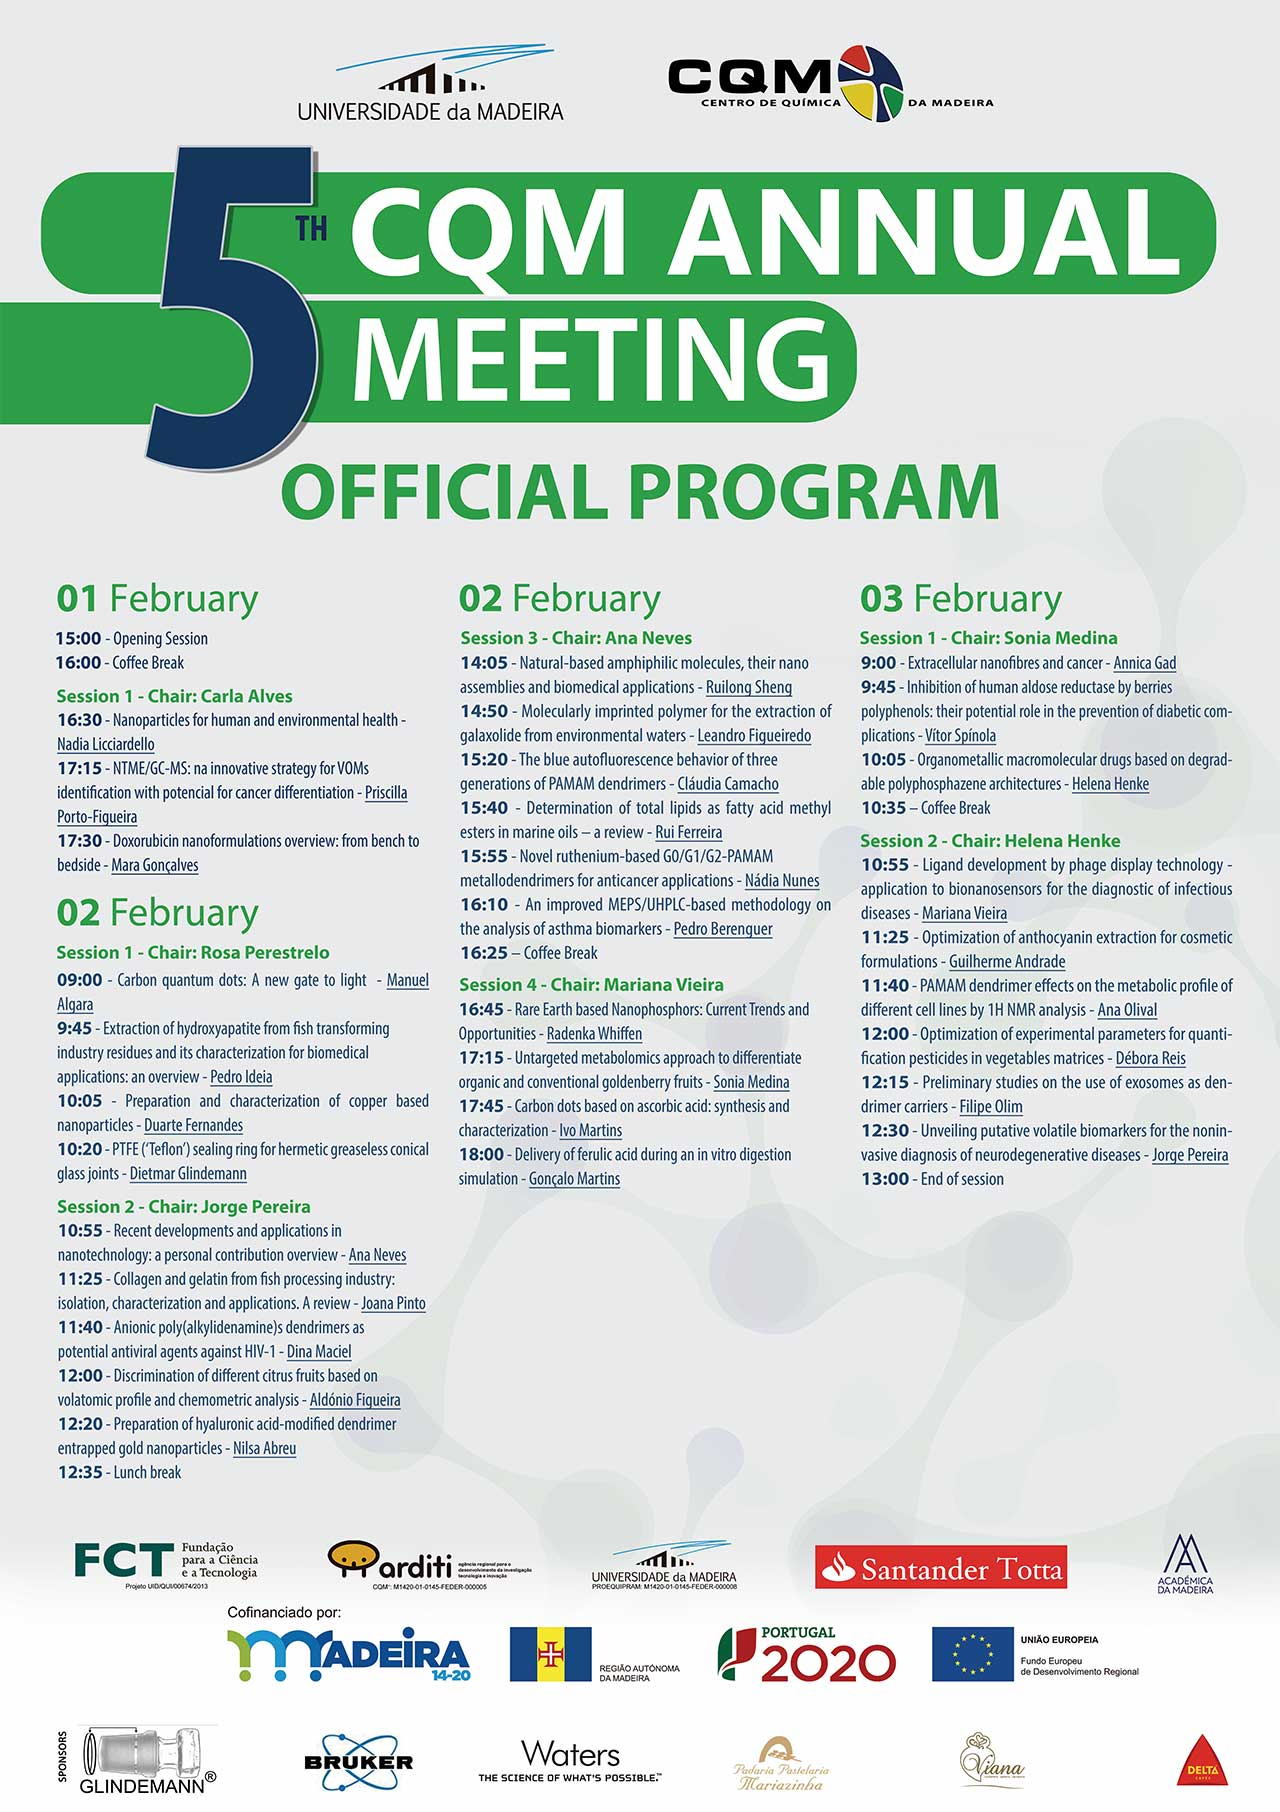 CQM's 5th Annual Meeting program poster.